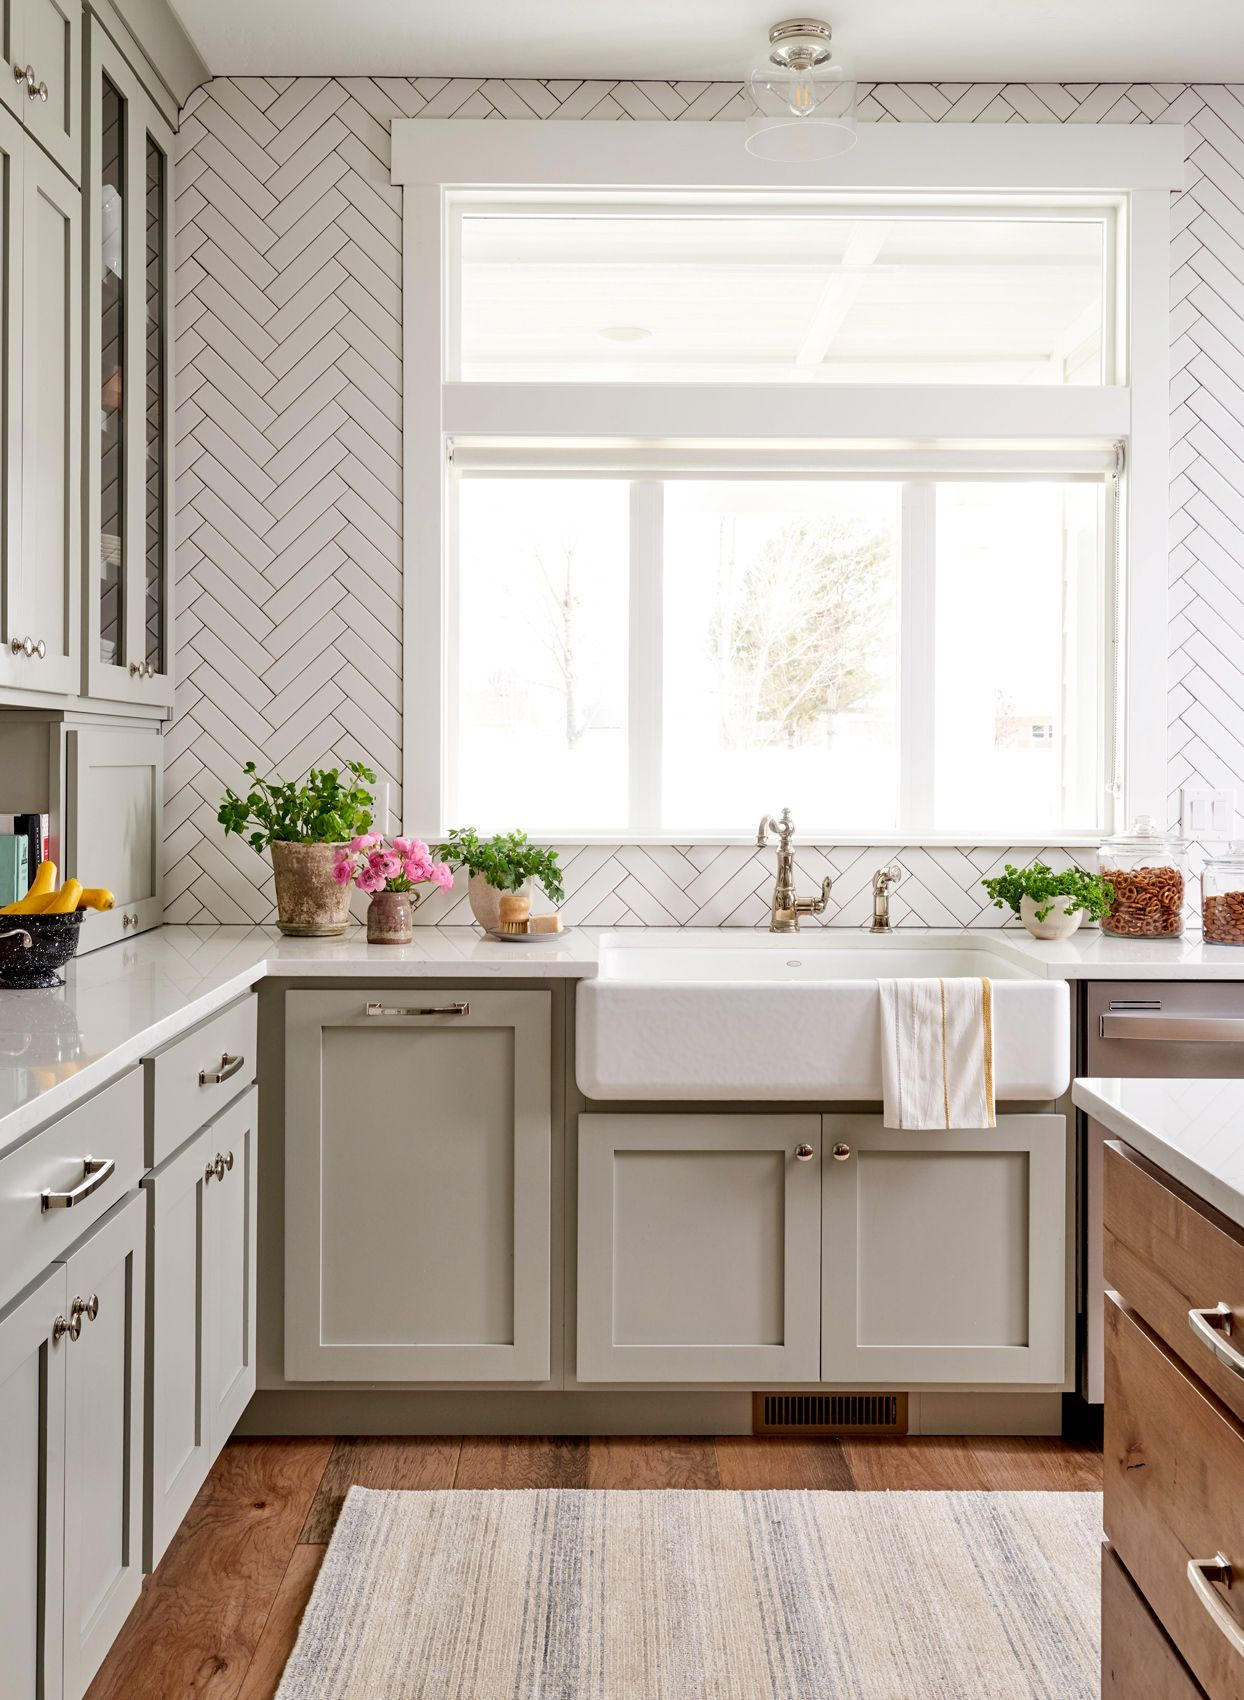 25 Winning Kitchen Color Schemes for a Look You'll Love Forever